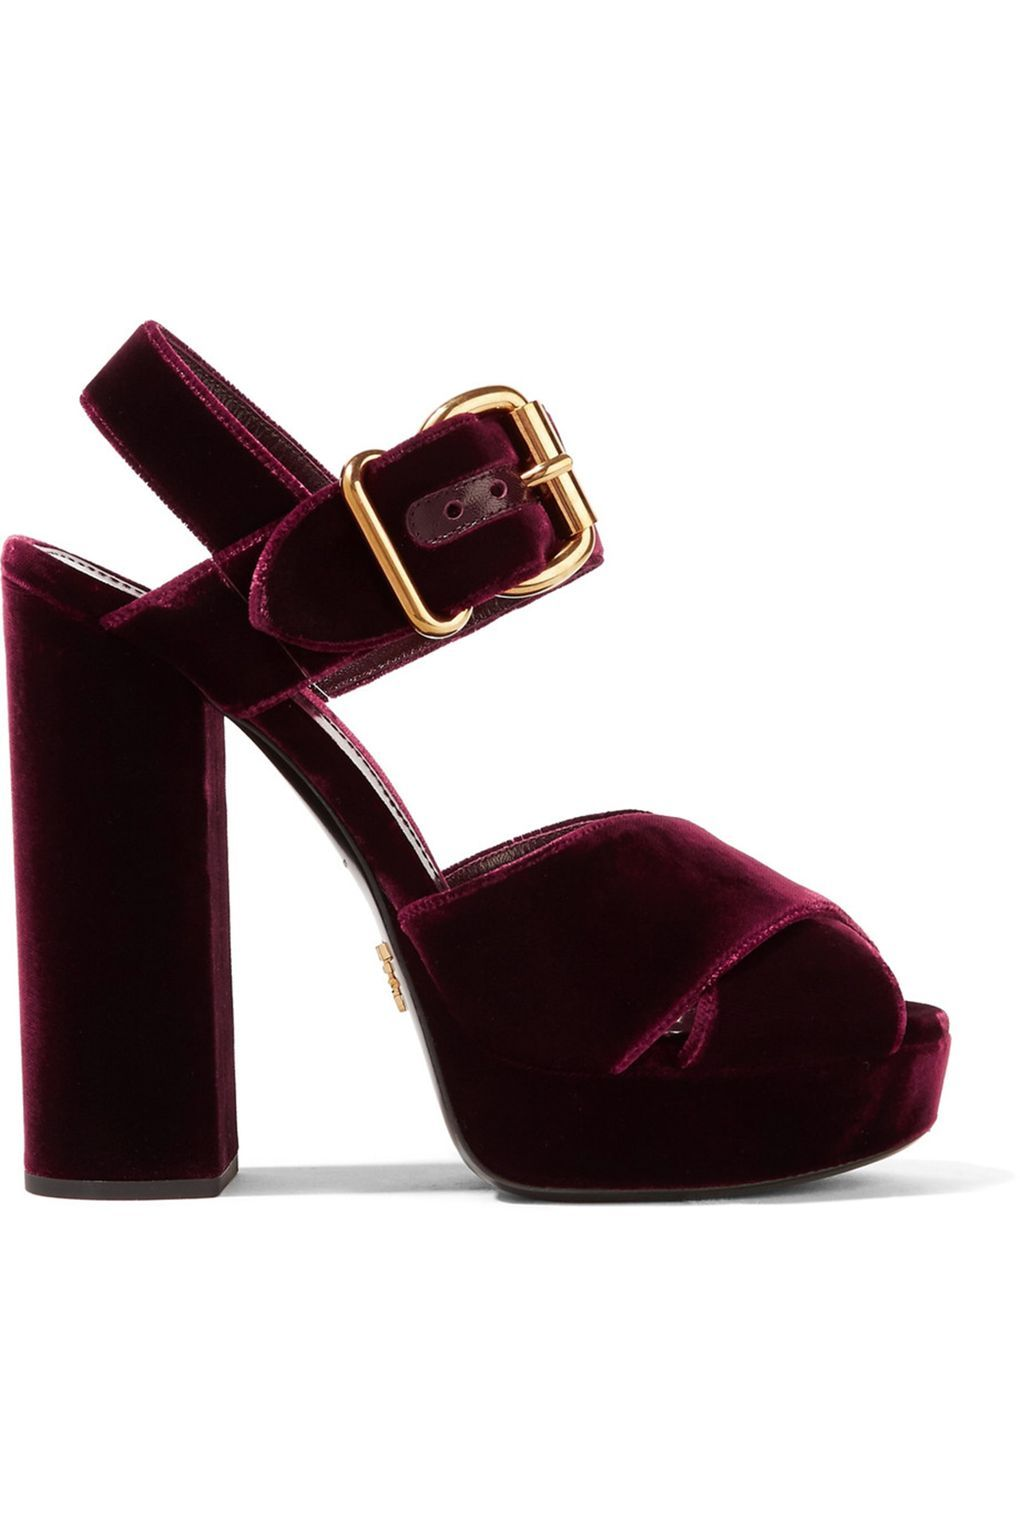 4846d730462 Sensuous velvet fashion - Prada velvet platforms